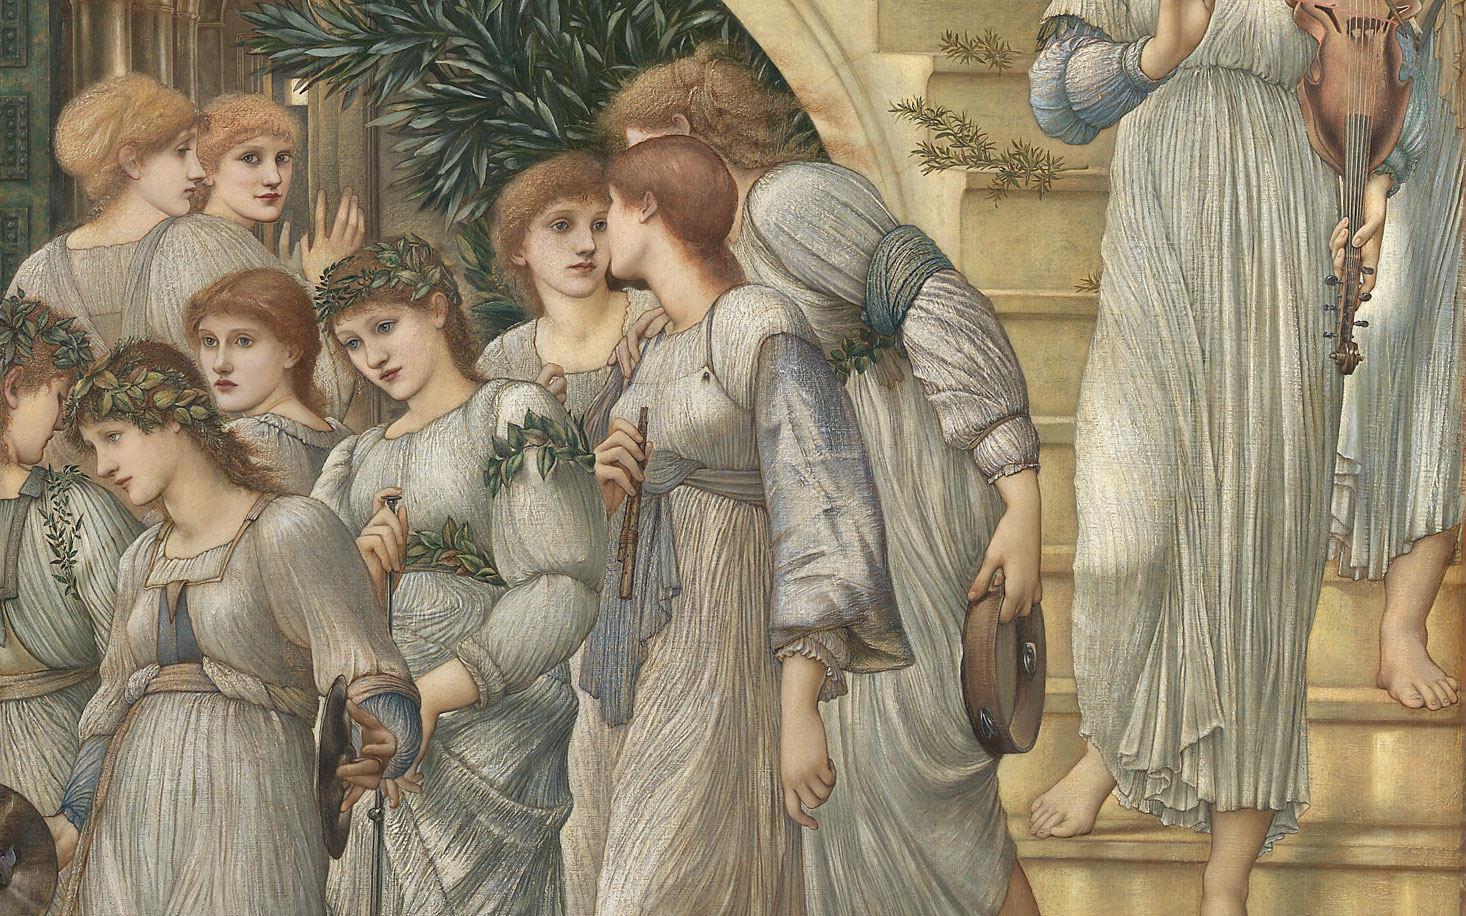 The mystery of the maidens on the stairs